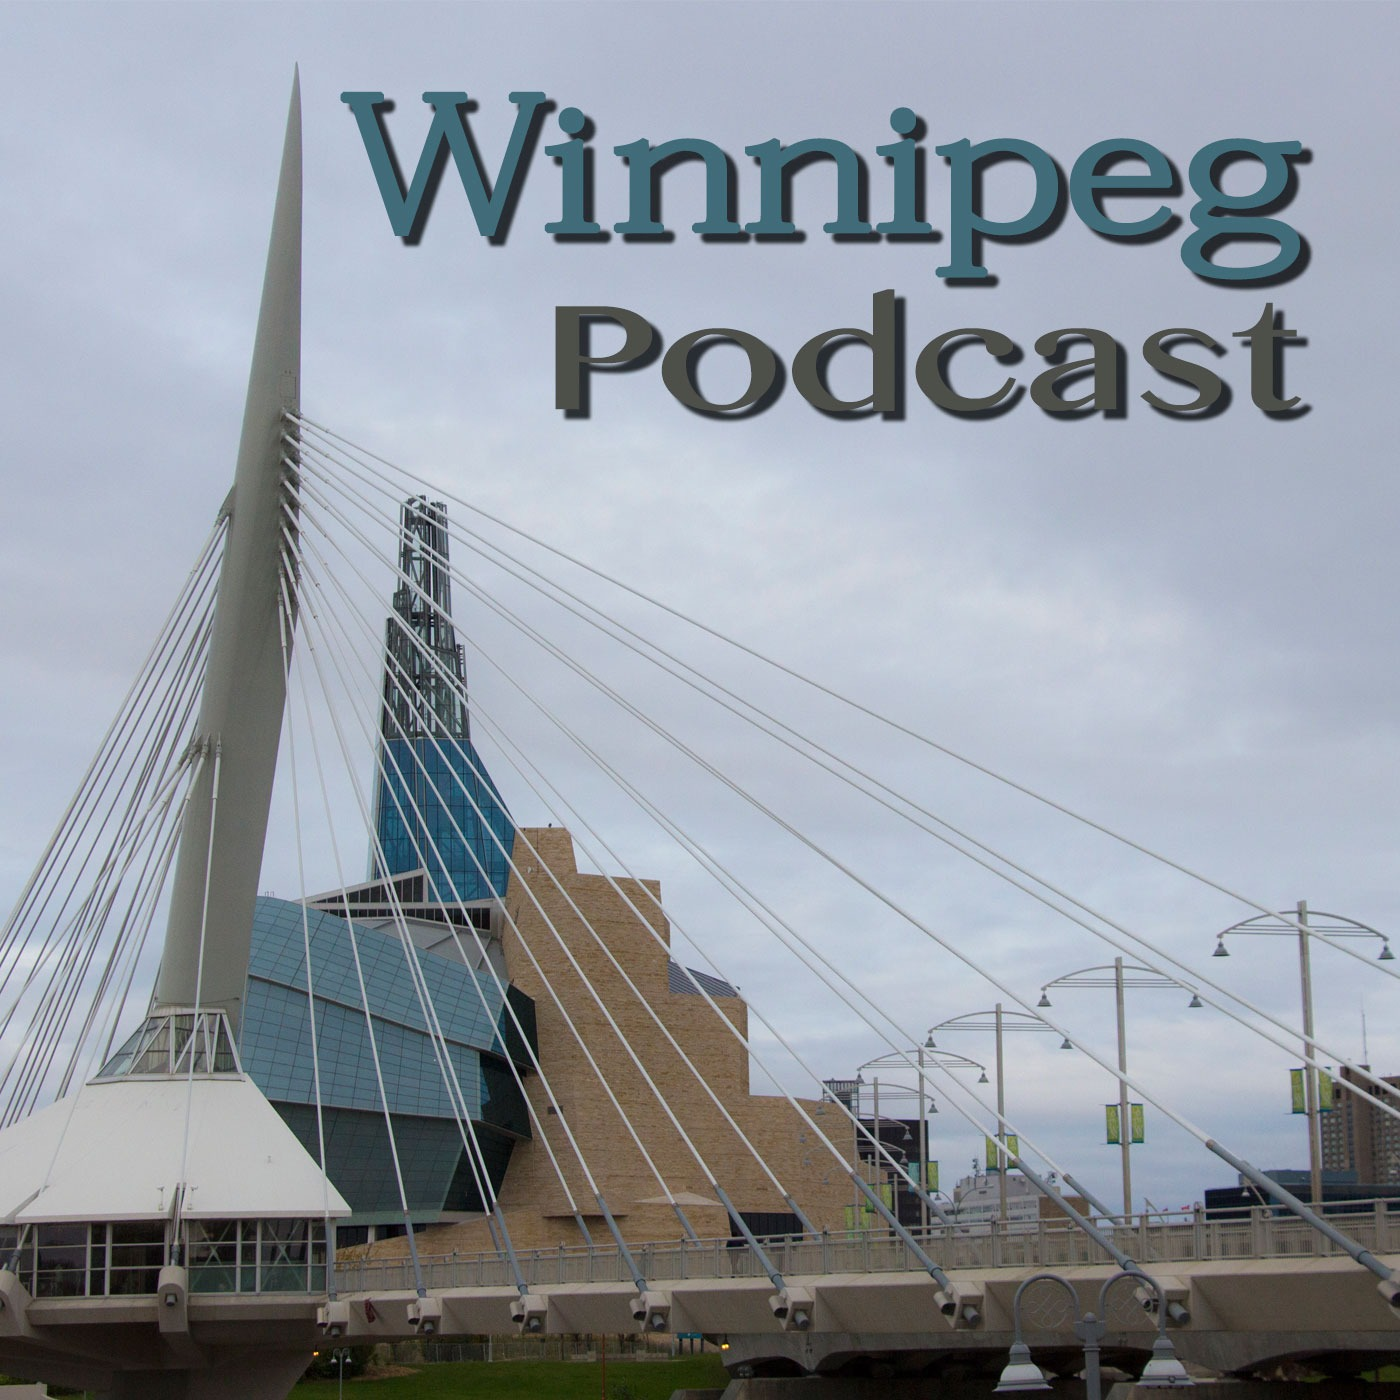 The Winnipeg Podcast